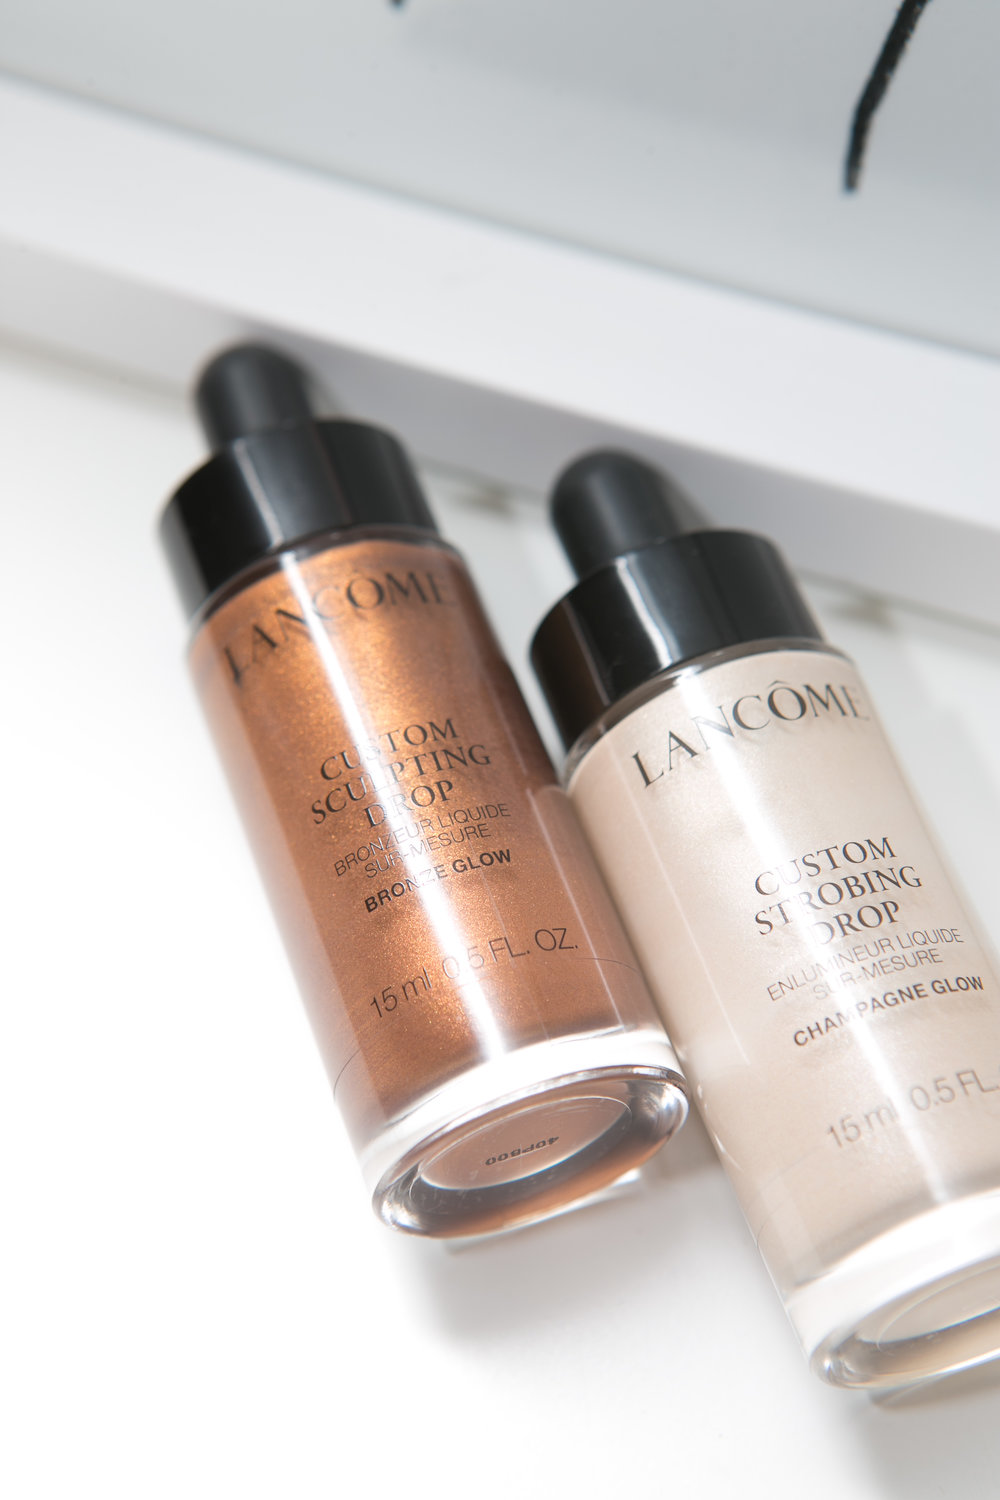 Lancôme Custom Sculpting Highlighting Drops